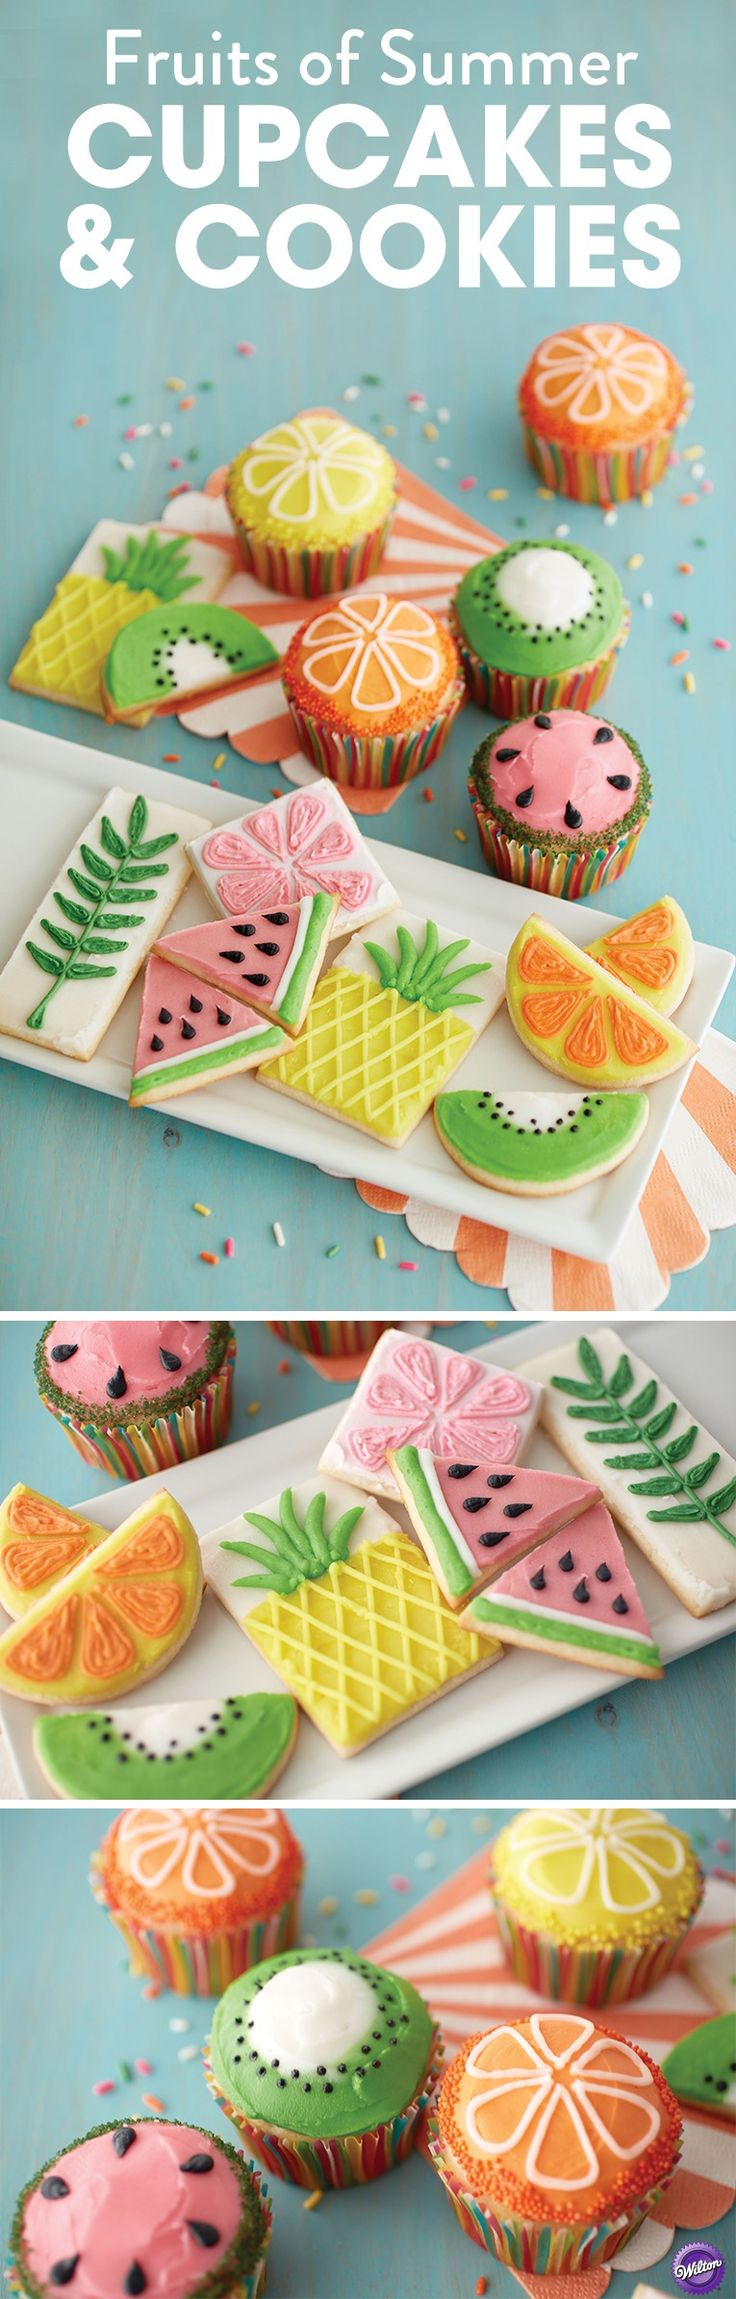 Make the fruits of summer as your inspiration to decorate cupcakes and cookies! Use the Wilton icing pouches for quick decorating. These tasty treats are great for your summer themed celebrations!